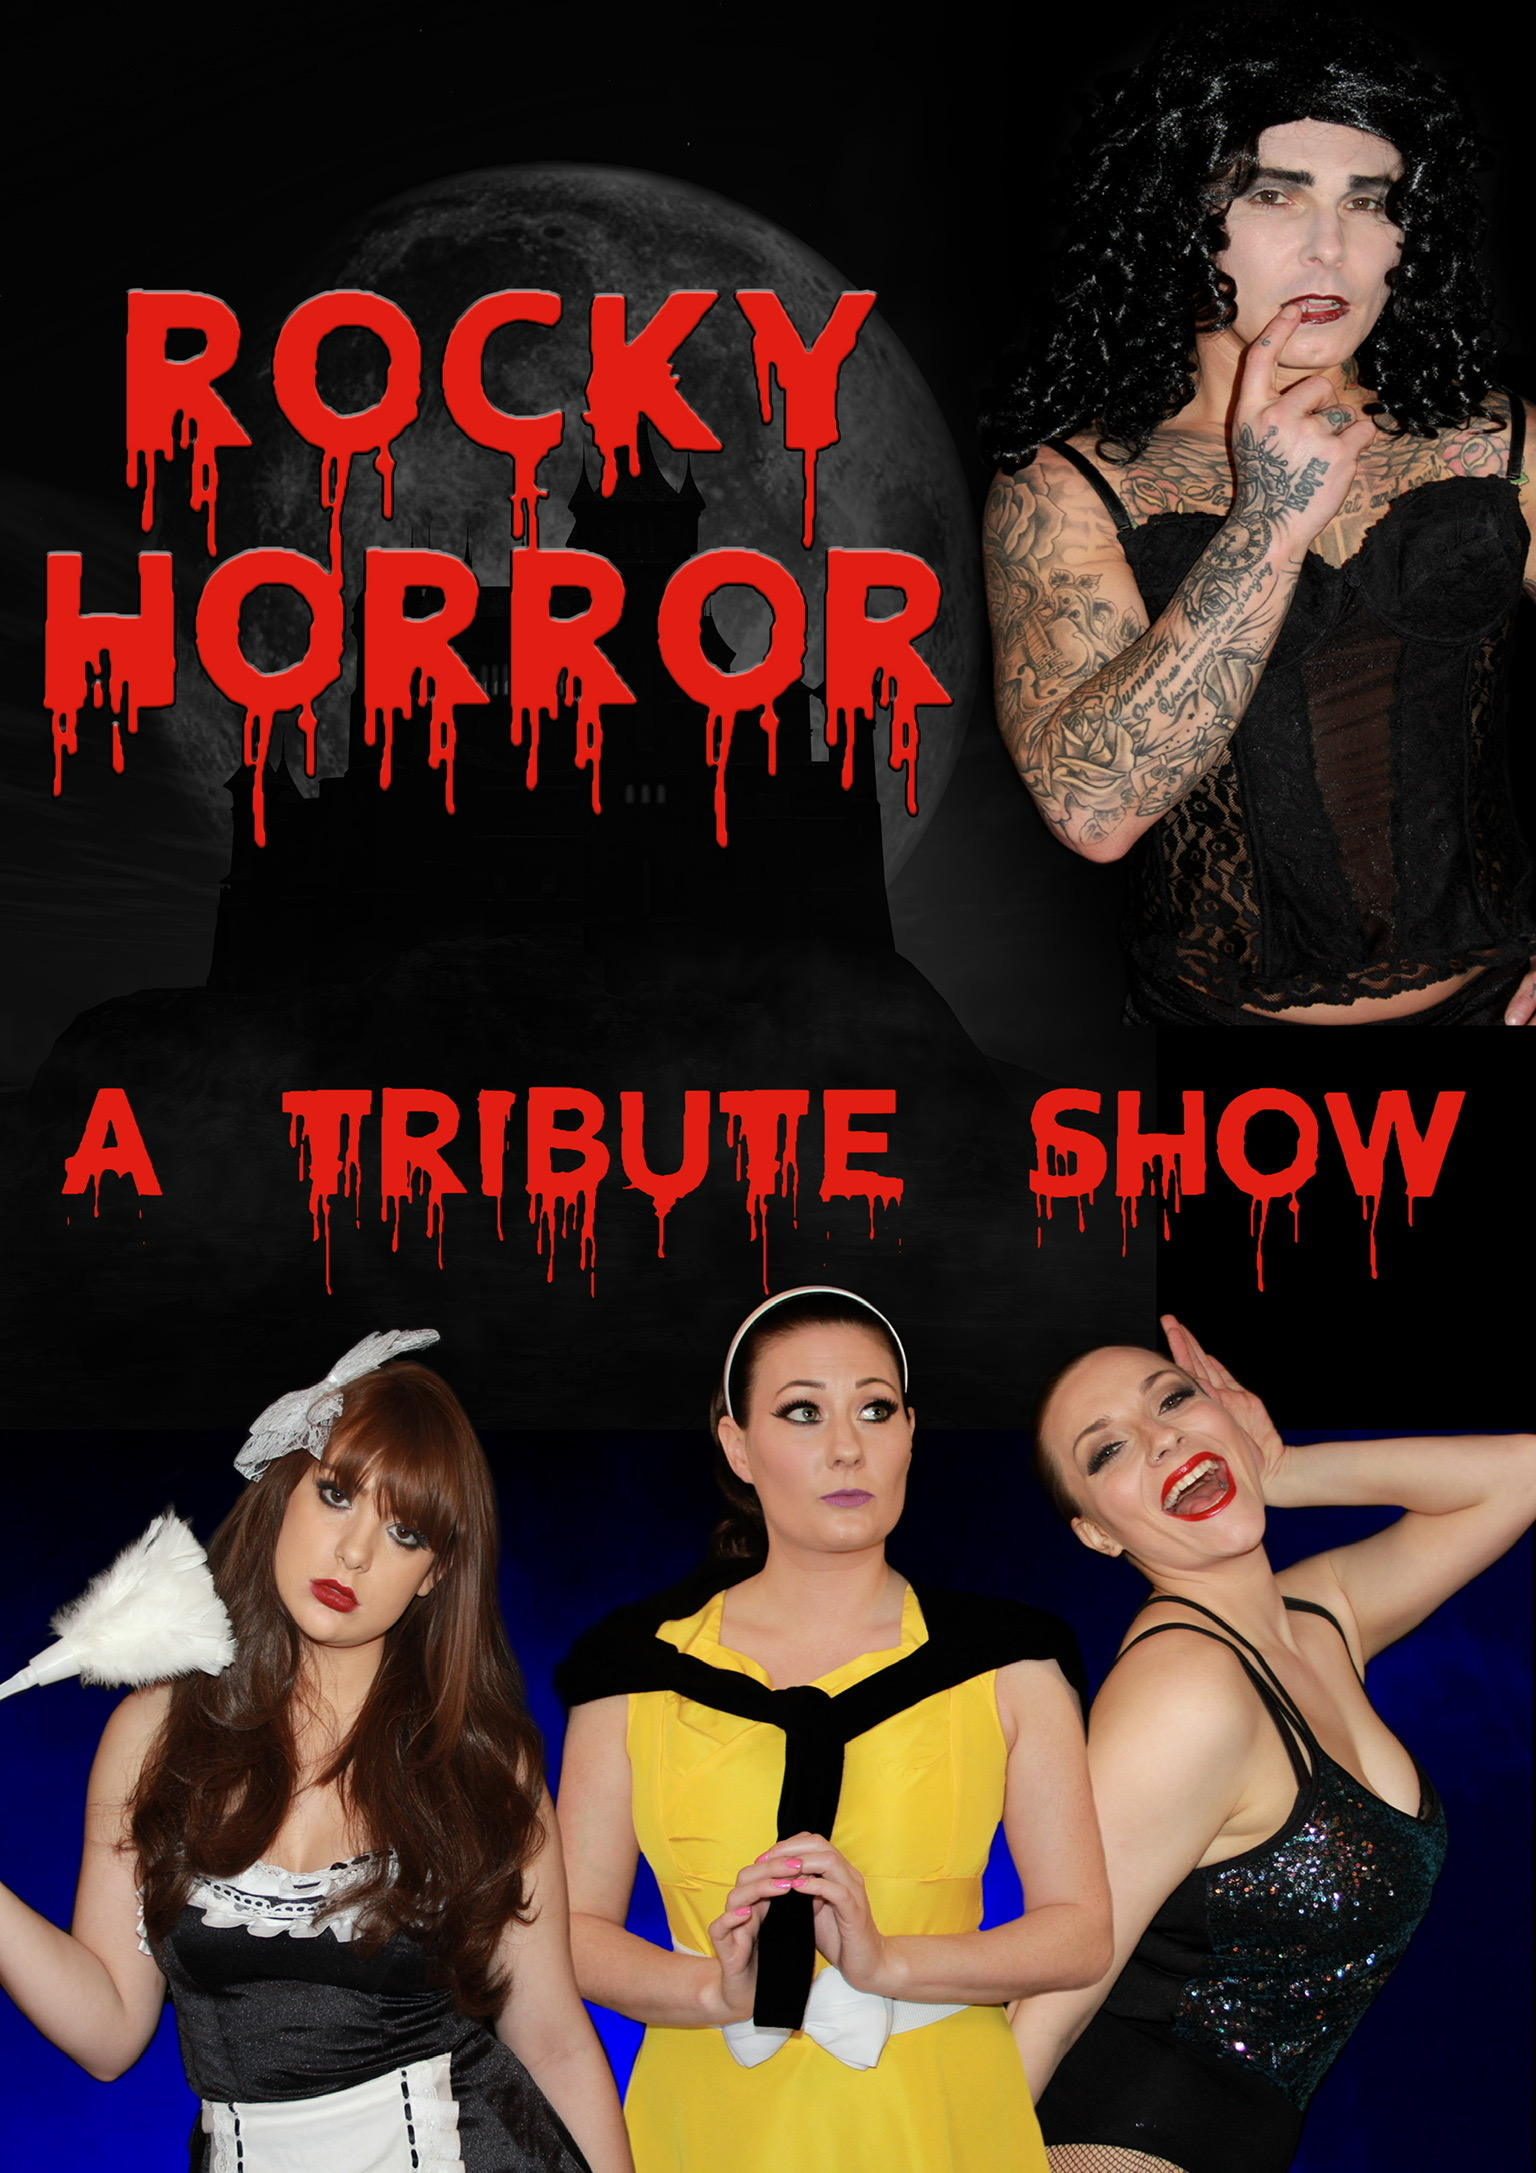 THE ROCKY HORROR EXPERIENCE - Oct 31st 2020